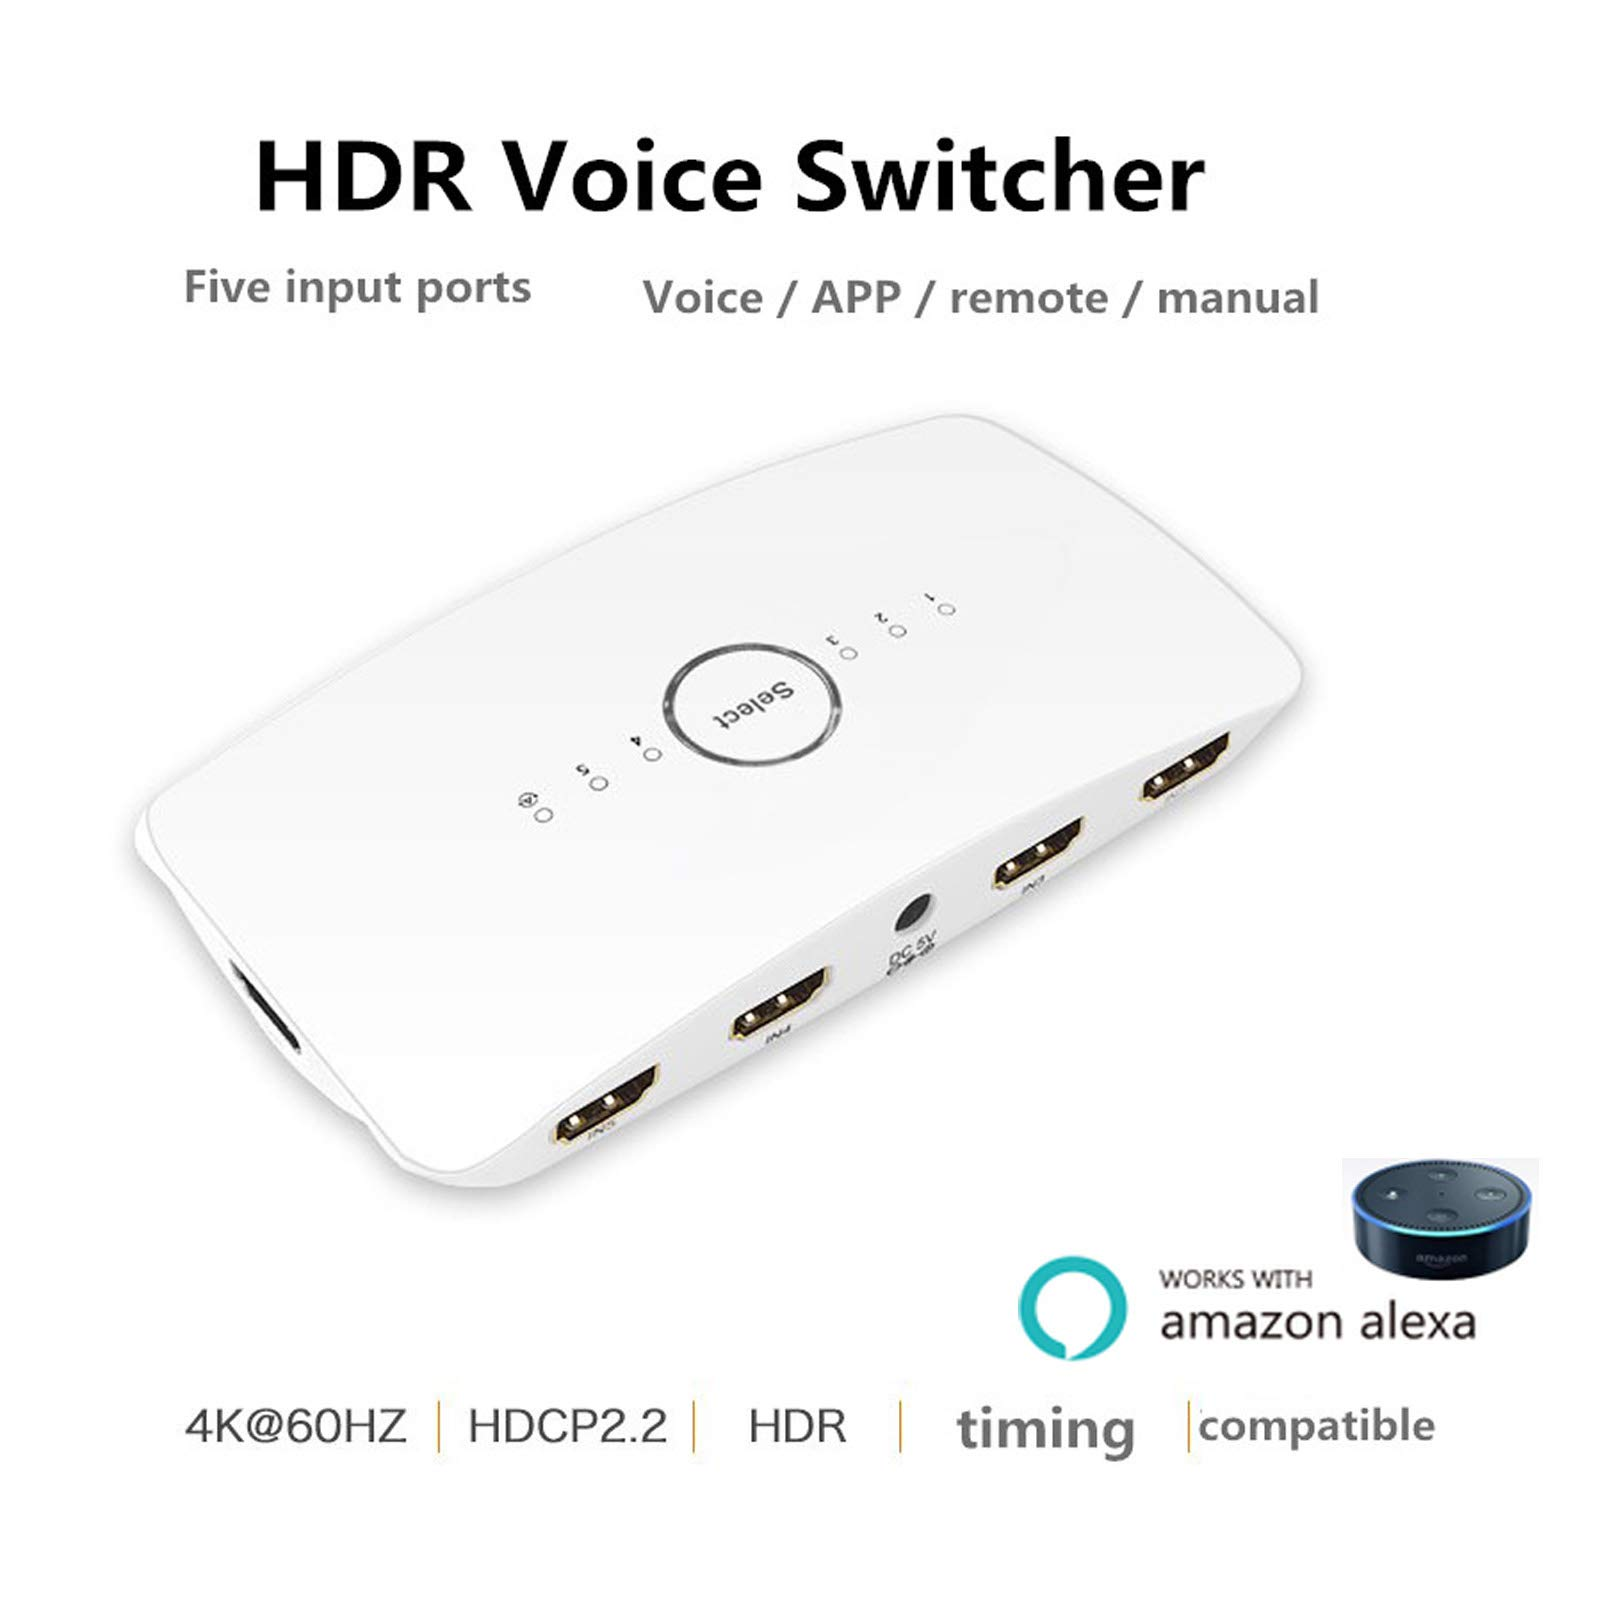 WiFi Smart Voice HDMI Switch 4K 5 Port 5x1 HDMI Switcher Splitter Box Support 4K@60HZ Ultra HD 3D Remote Control and Power Adapter for Amazon echo Compatible with Alexa, Wireless Cellphone APP Remote